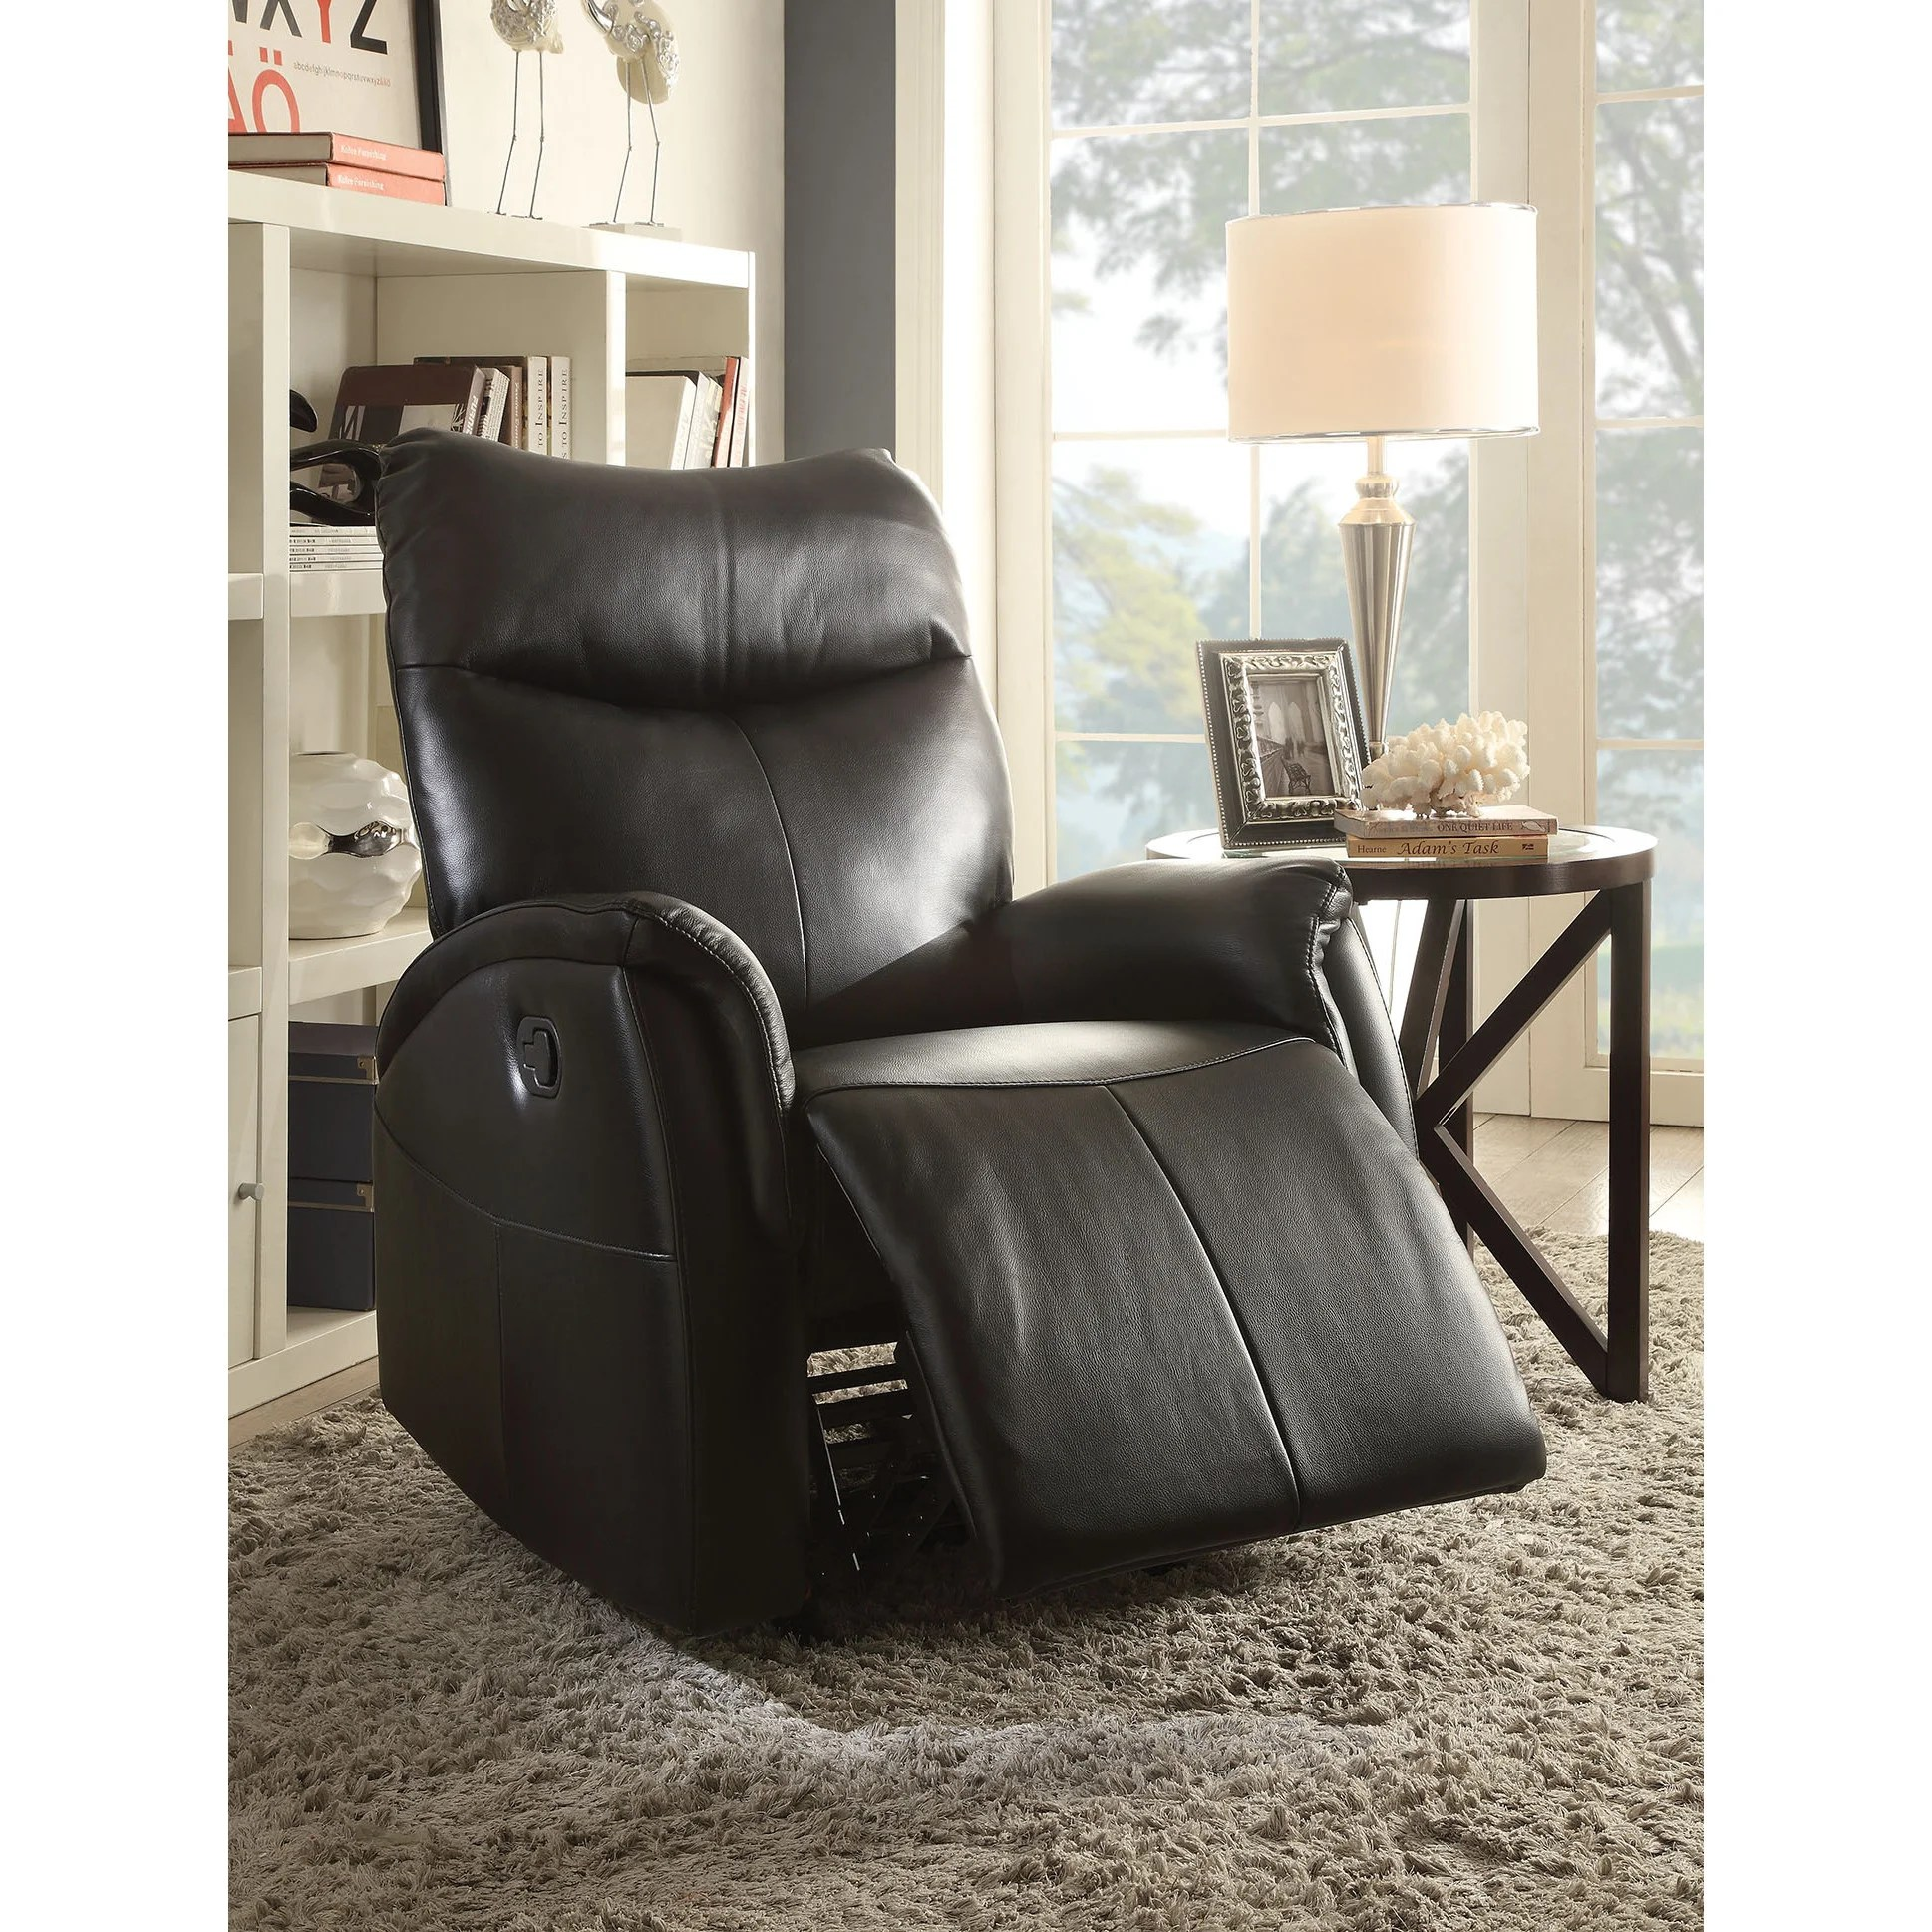 modern black leather recliner chair swivel tonaton rocker arm living room